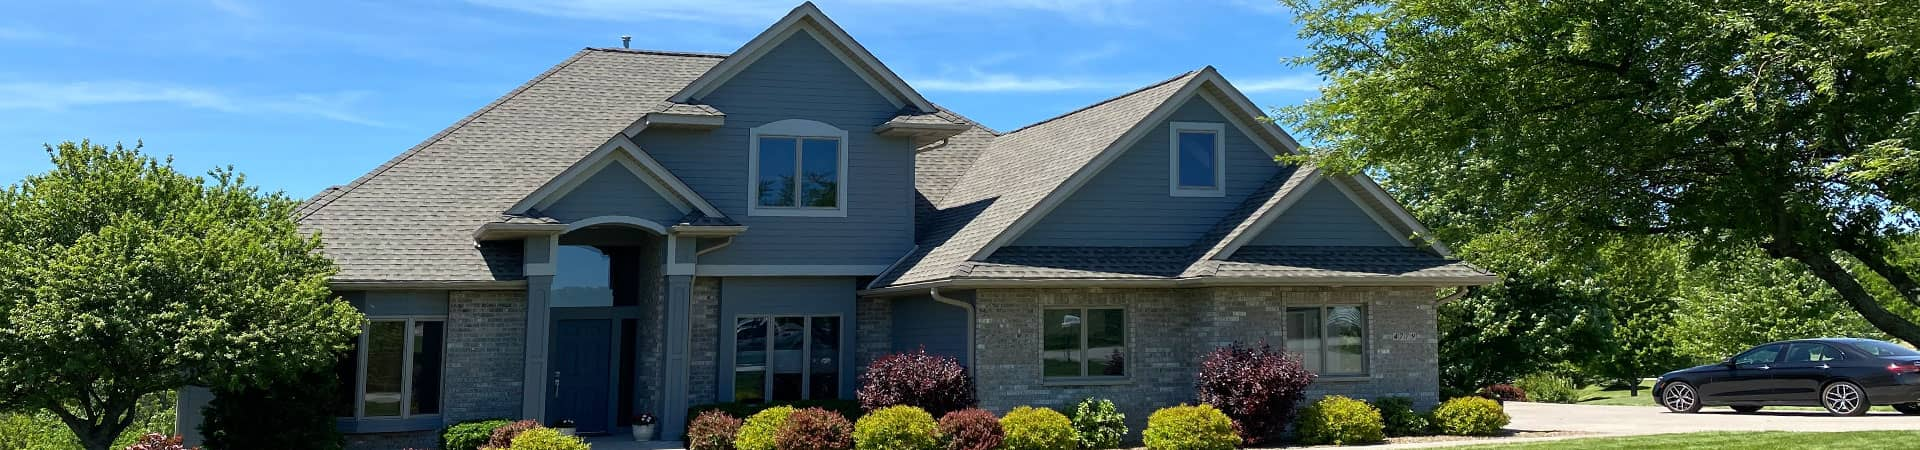 residential-roofing-siding-services